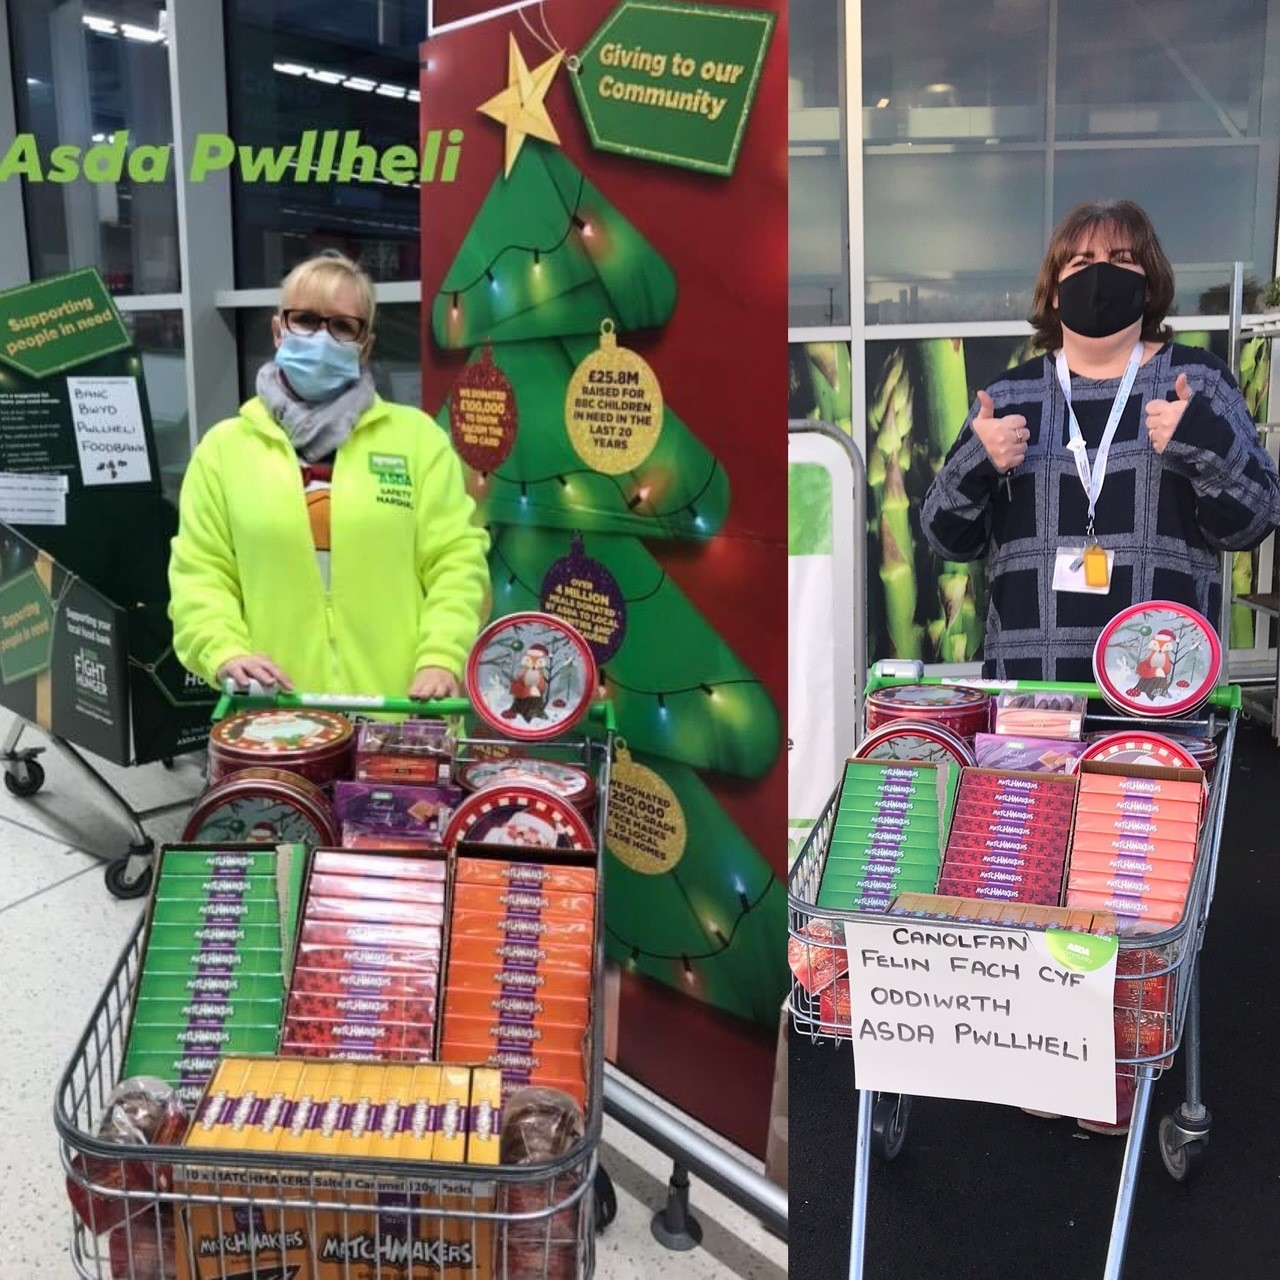 Helping people in Crisis  | Asda Pwllheli